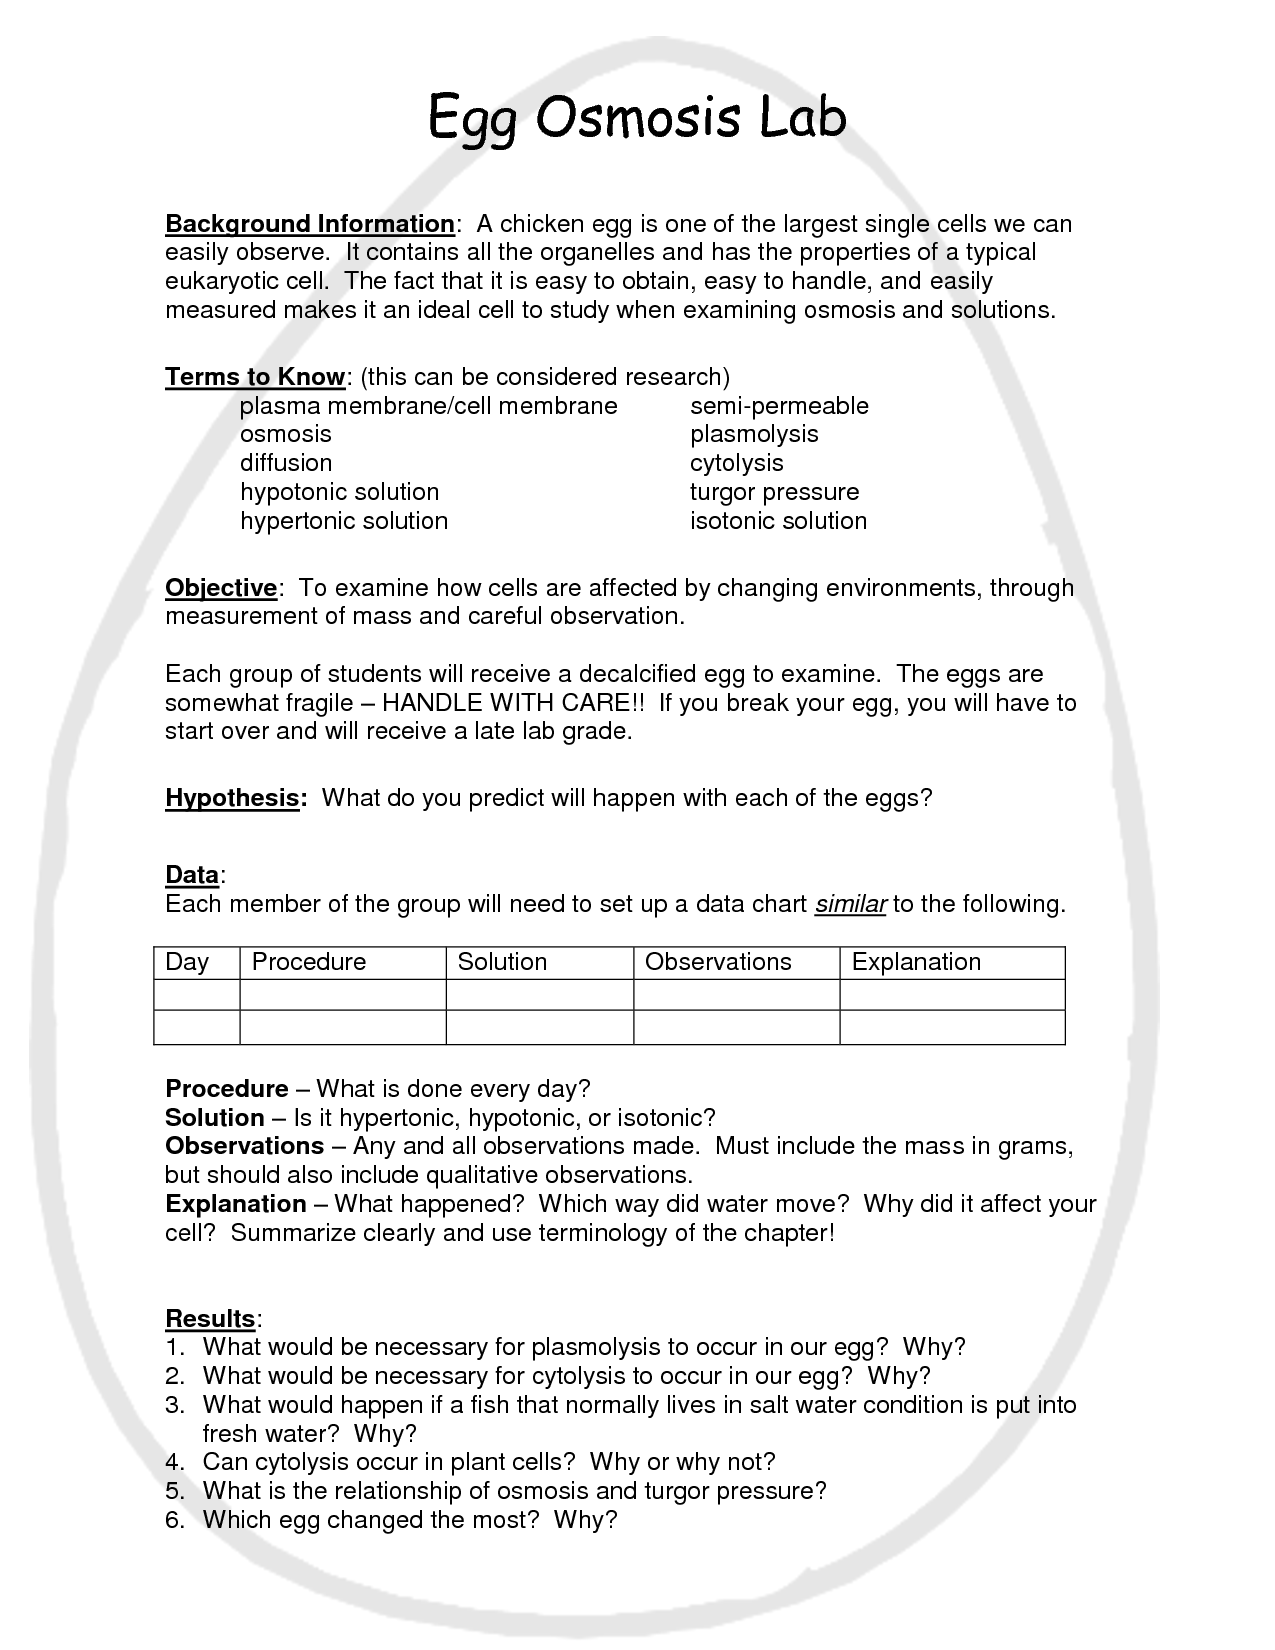 Egg Osmosis Lab Worksheet